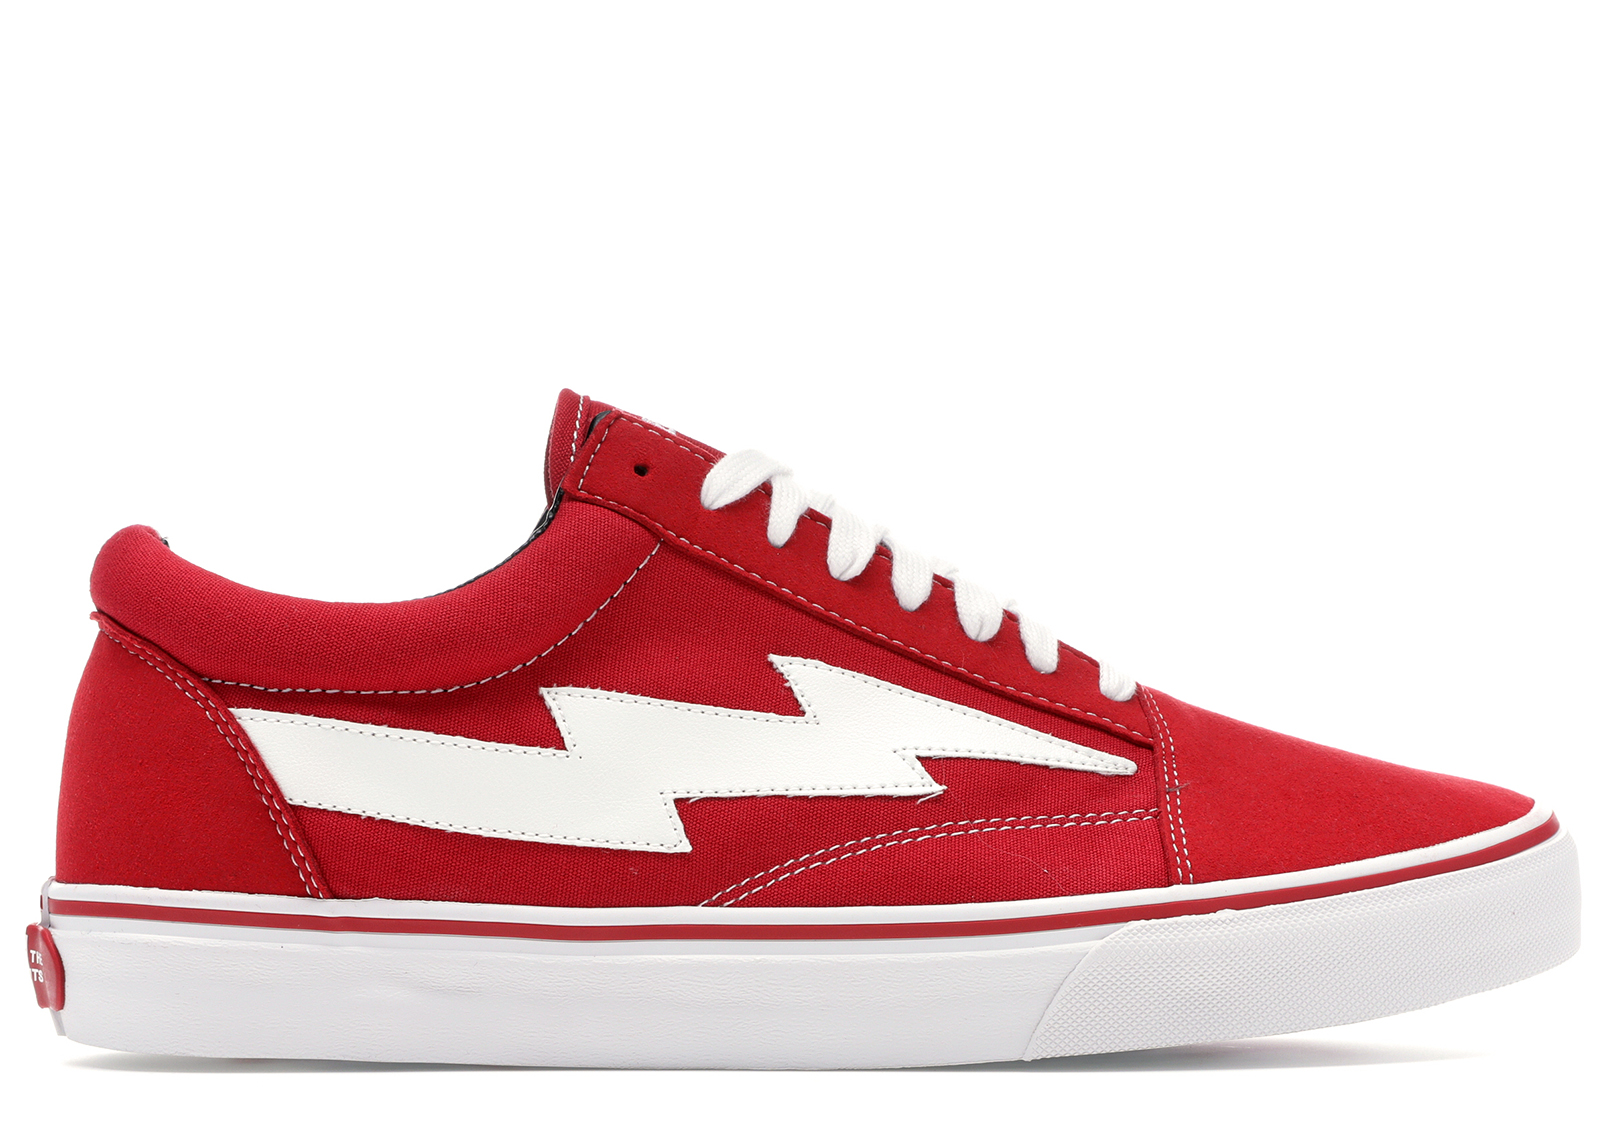 Revenge X Storm Low Top Red REVS 003 RED